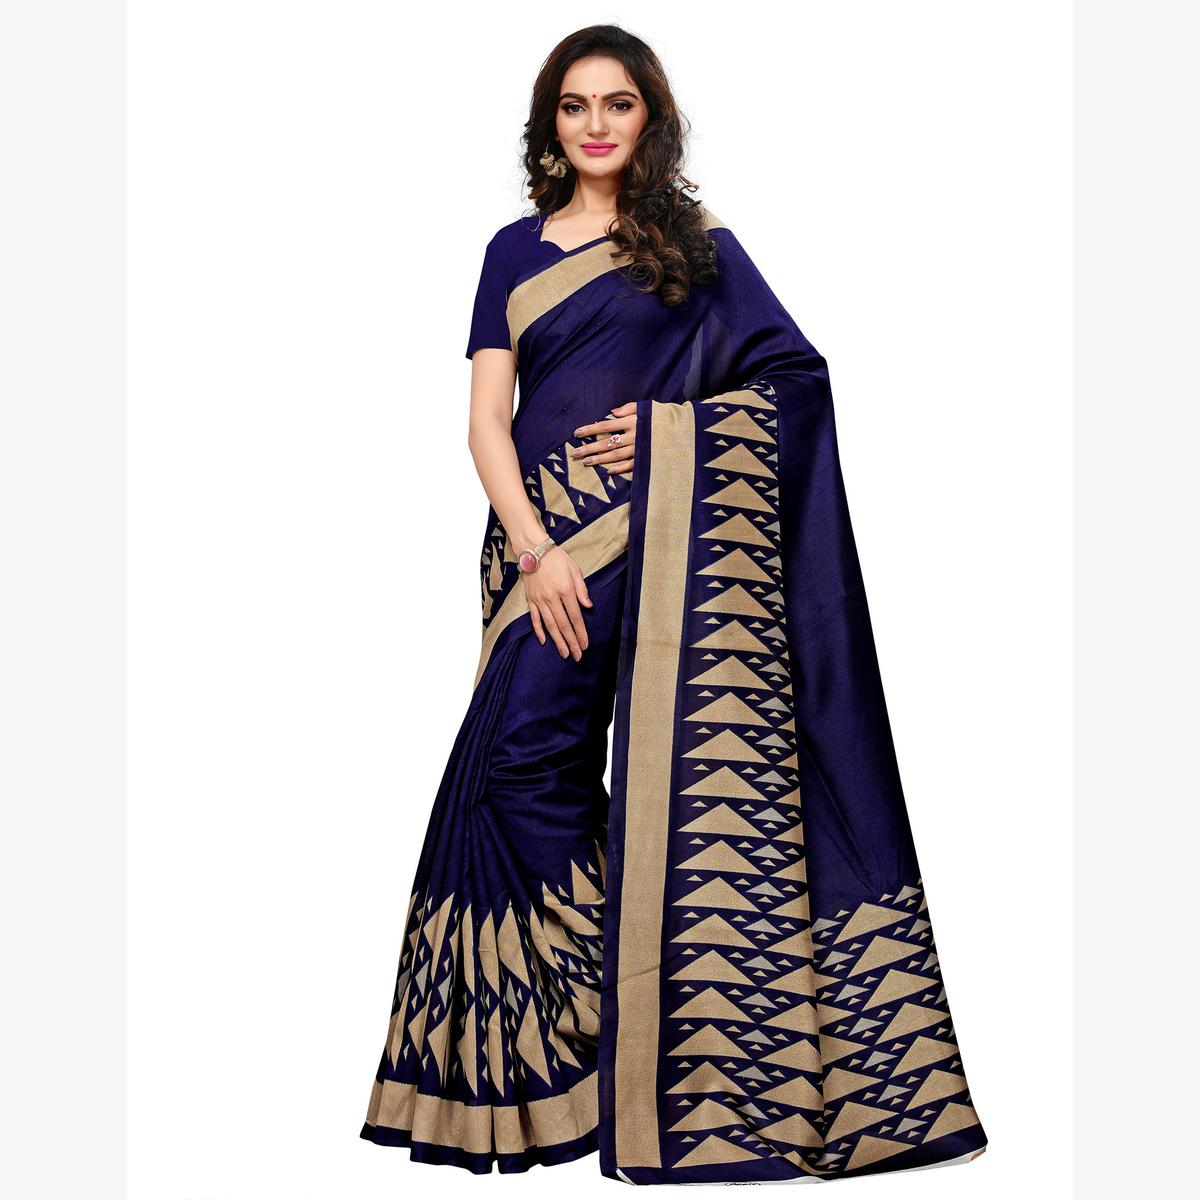 1182f8d3ec Buy Exotic Navy Blue Colored Casual Wear Printed Art Silk Saree for womens  online India, Best Prices, Reviews - Peachmode